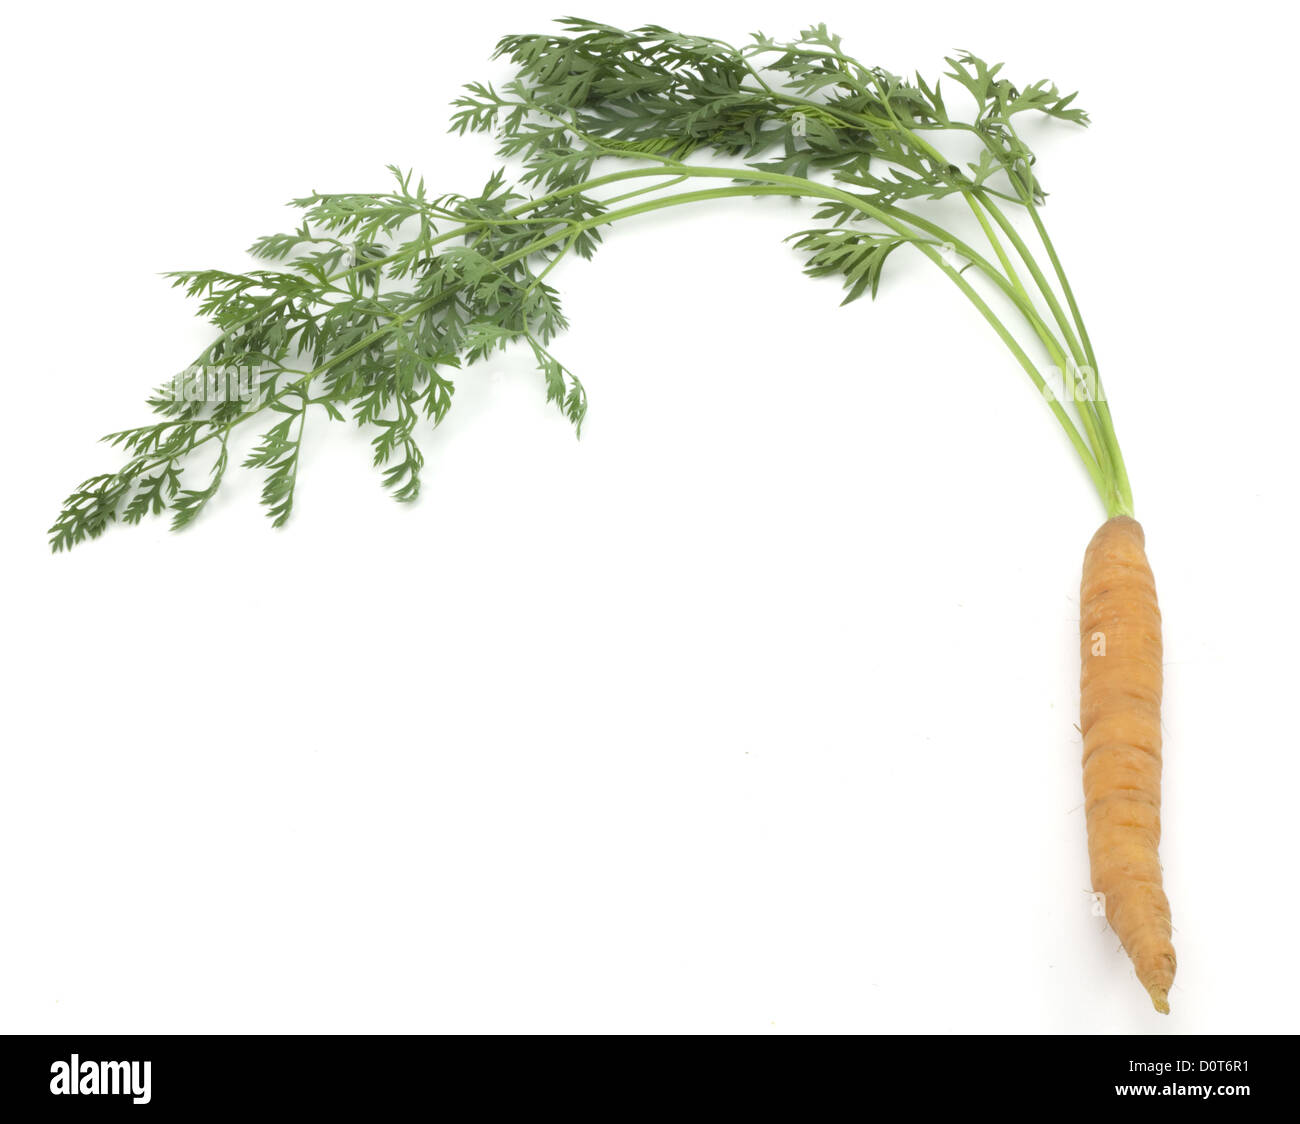 carrots with stems - Stock Image